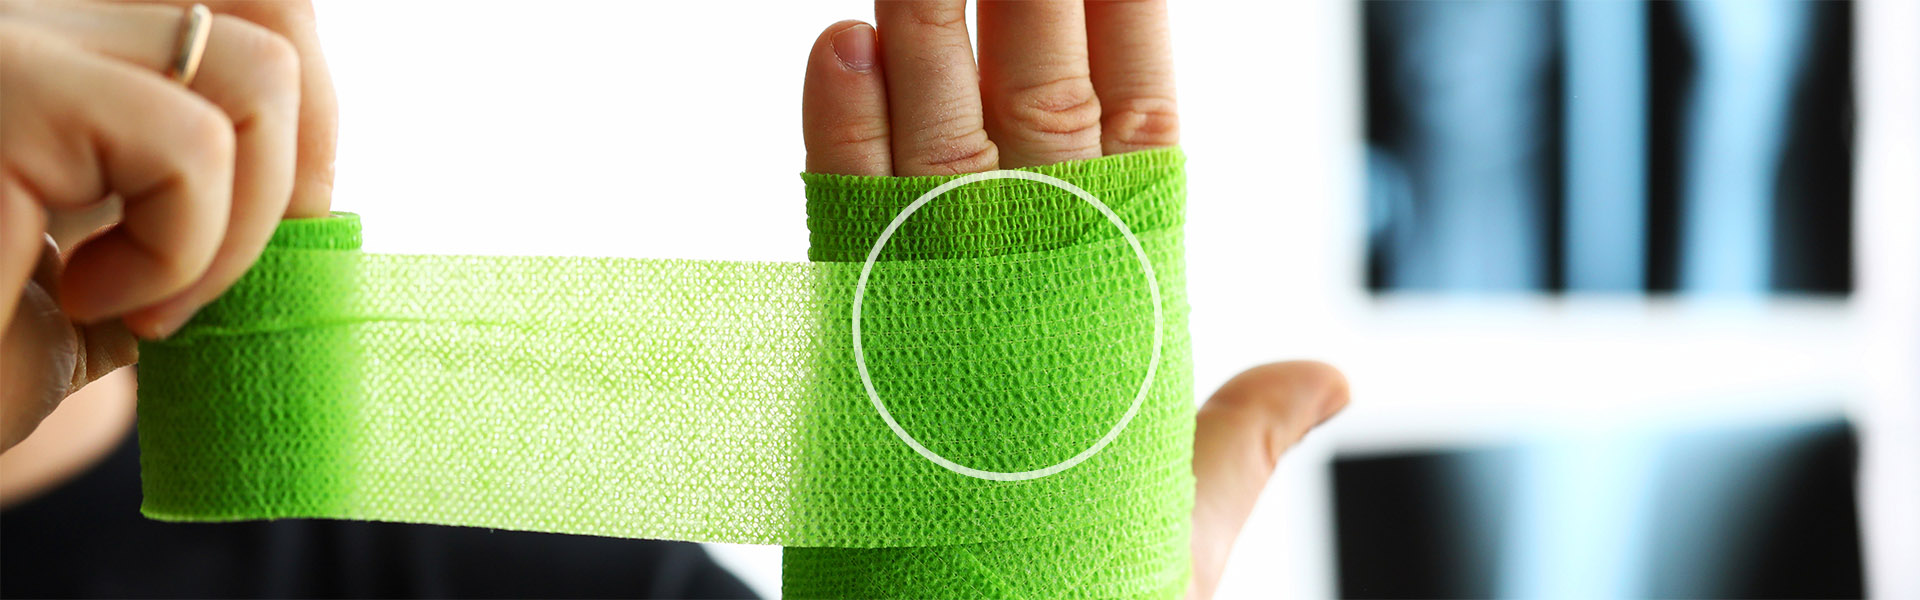 Treatment for wrist, hand, and finger fractures and sprains.